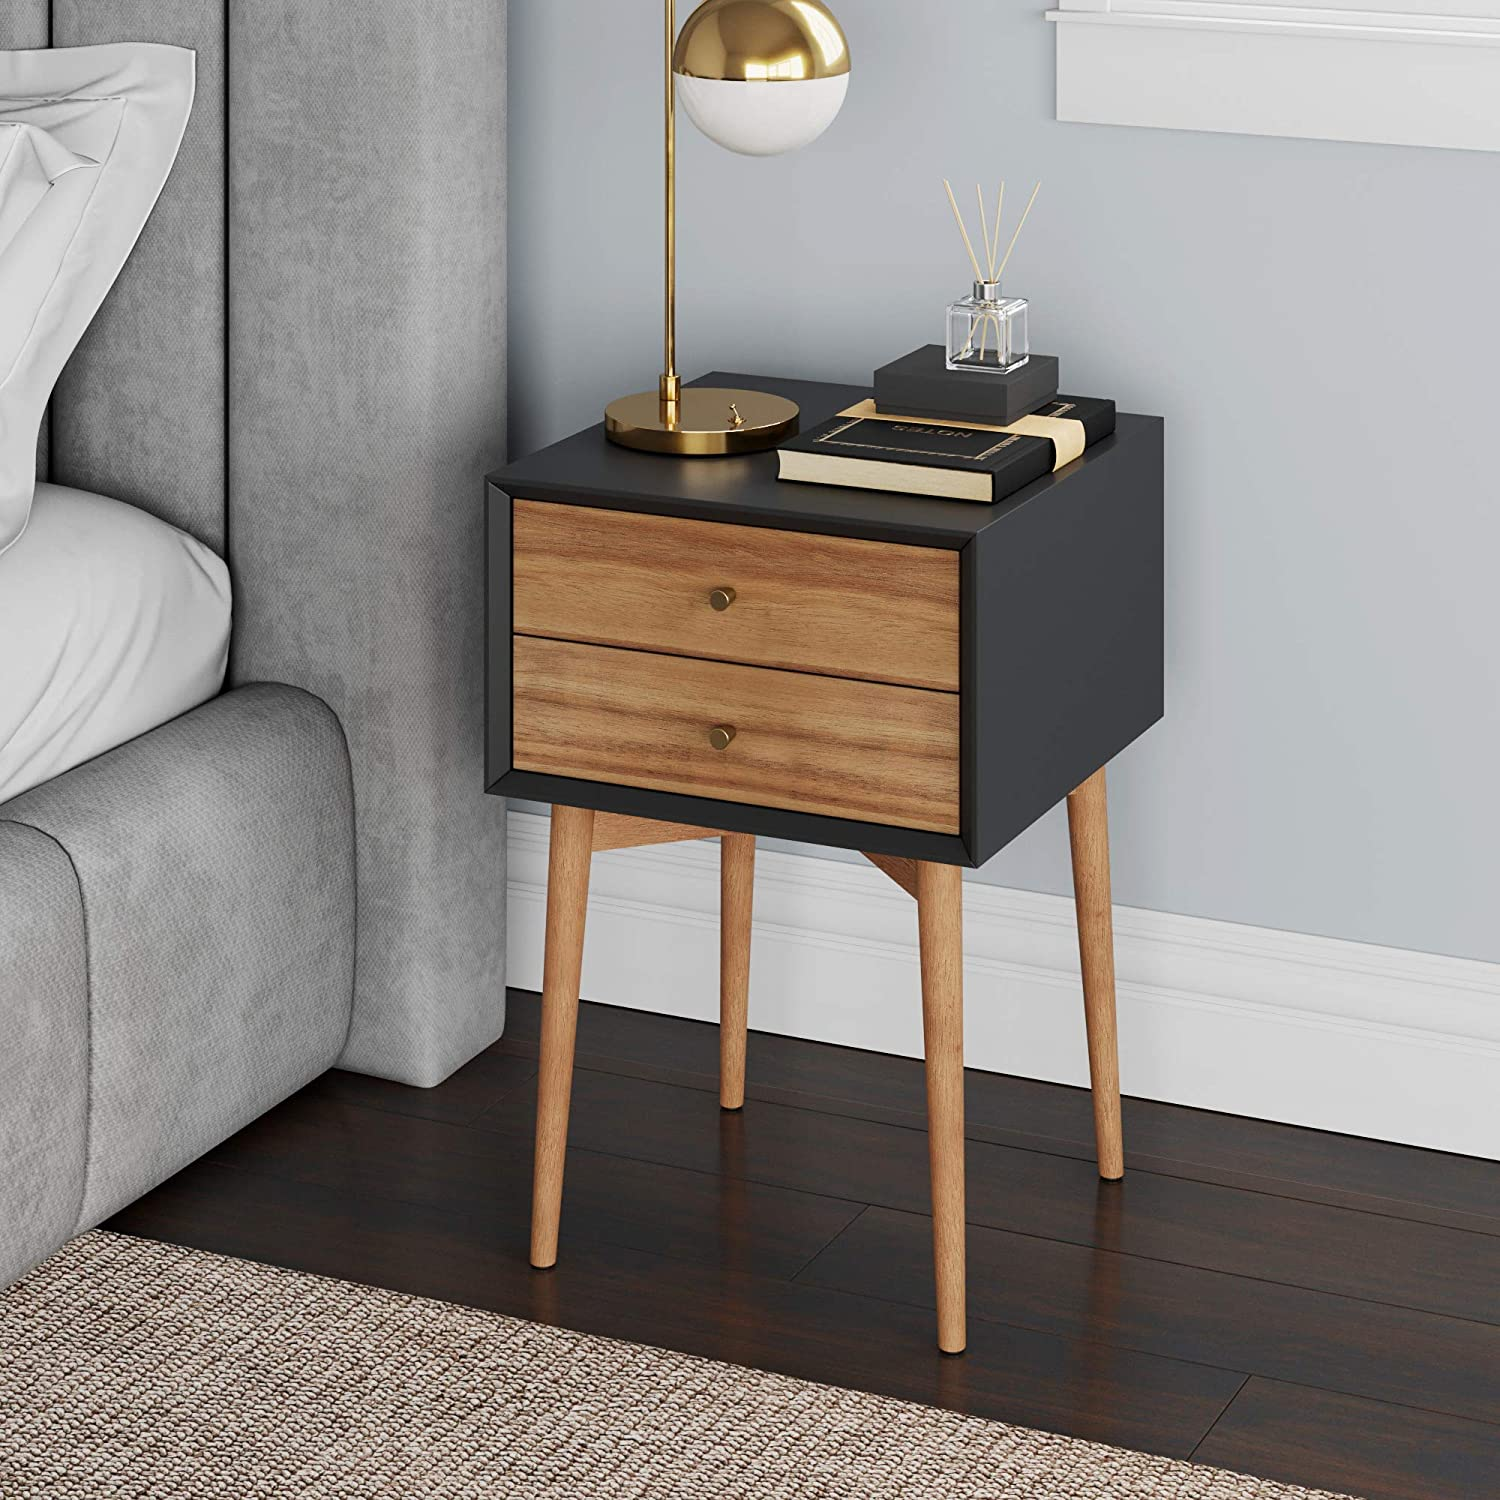 Coastal Nightstands & Bedside Tables